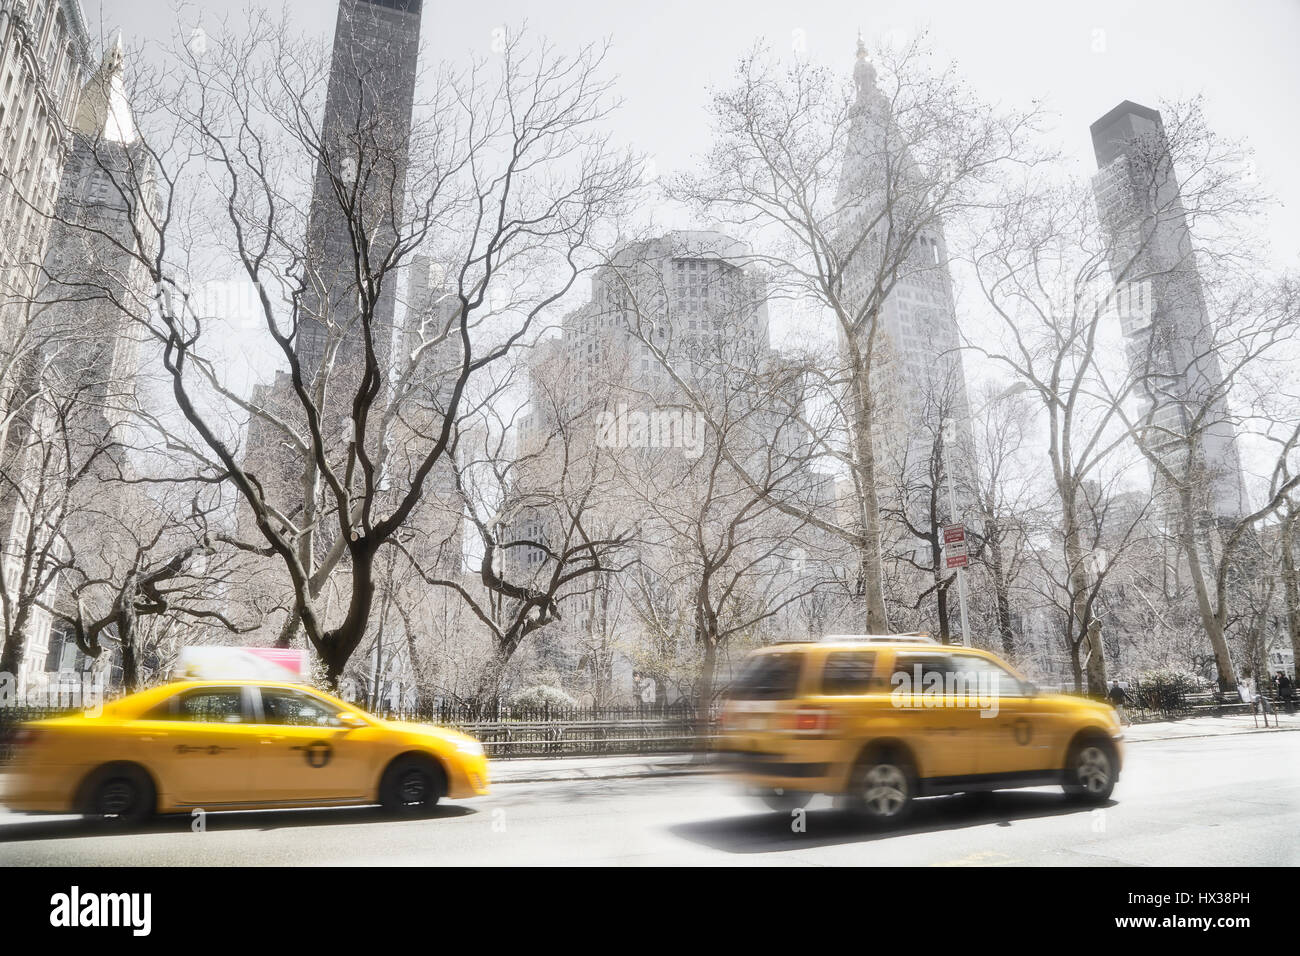 Taxi cabs driving in New York in front of a park - Stock Image